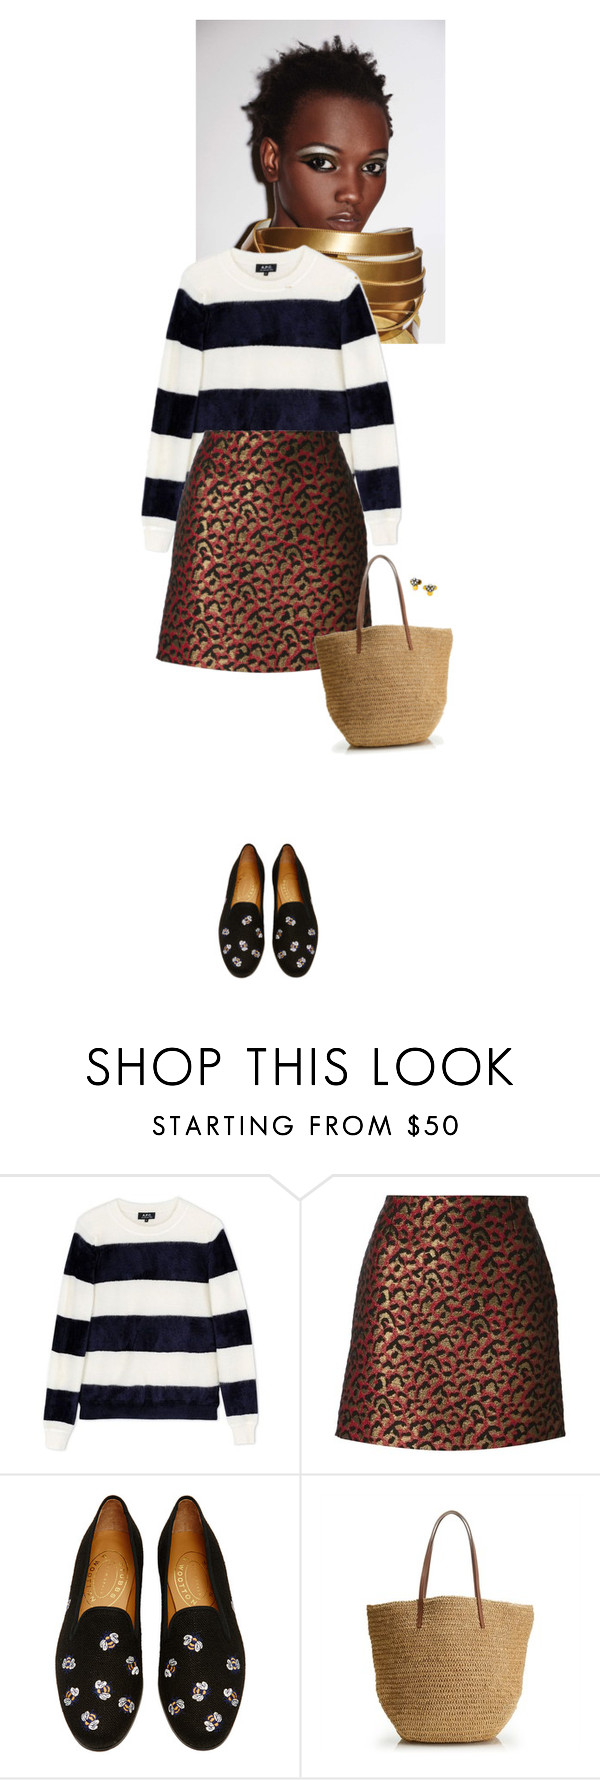 """Untitled #2083"" by wizmurphy ❤ liked on Polyvore featuring A.P.C., Yves Saint Laurent, Stubbs & Wootton, J.Crew, BaubleBar, women's clothing, women, female, woman and misses"